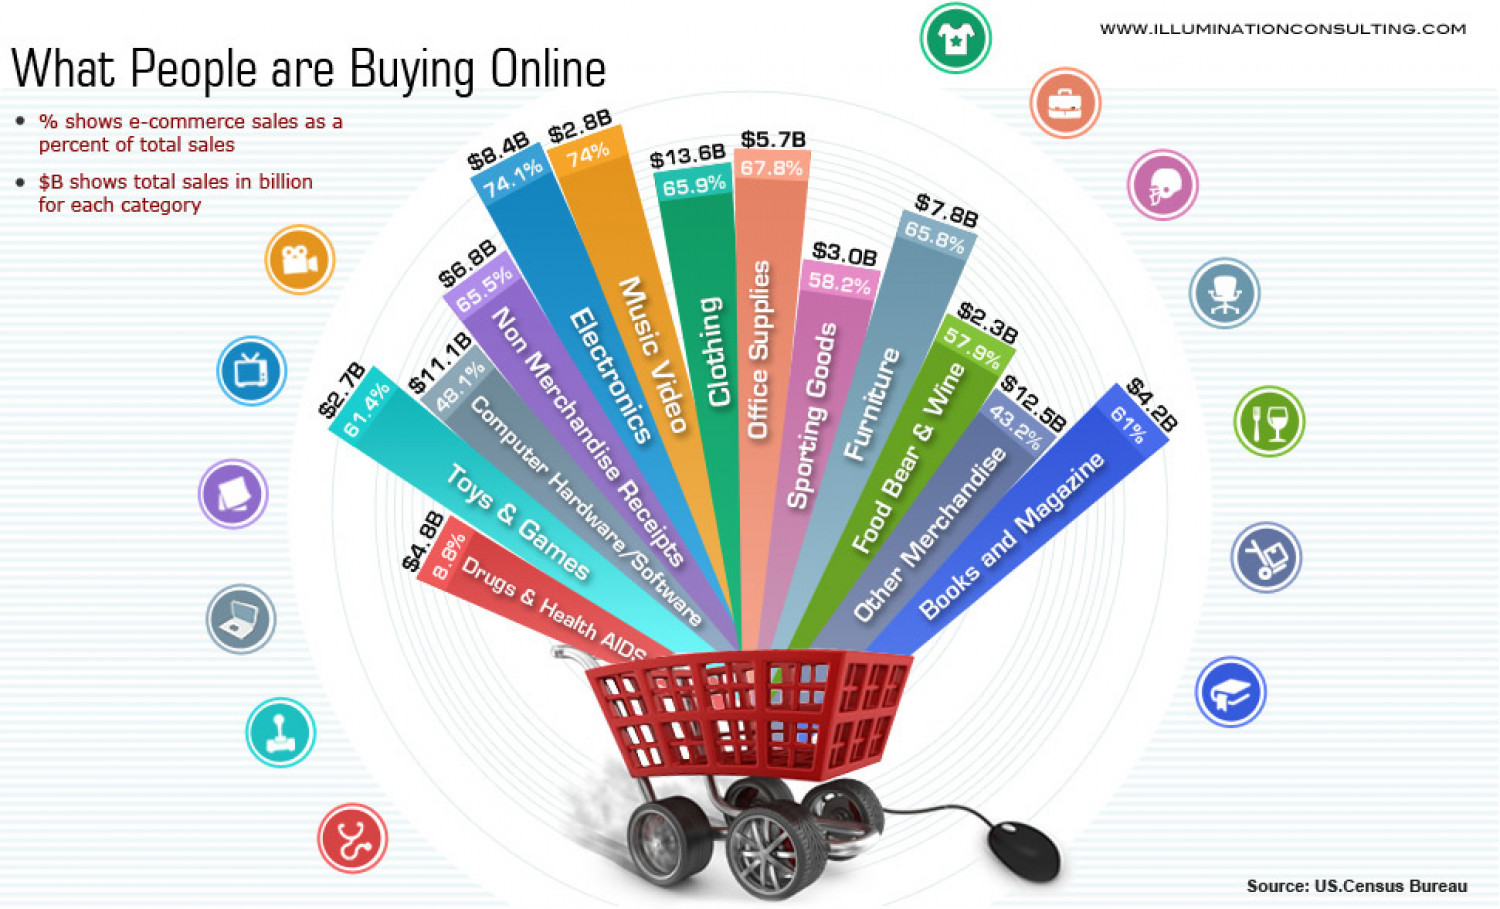 What Are People Buying Online Infographic